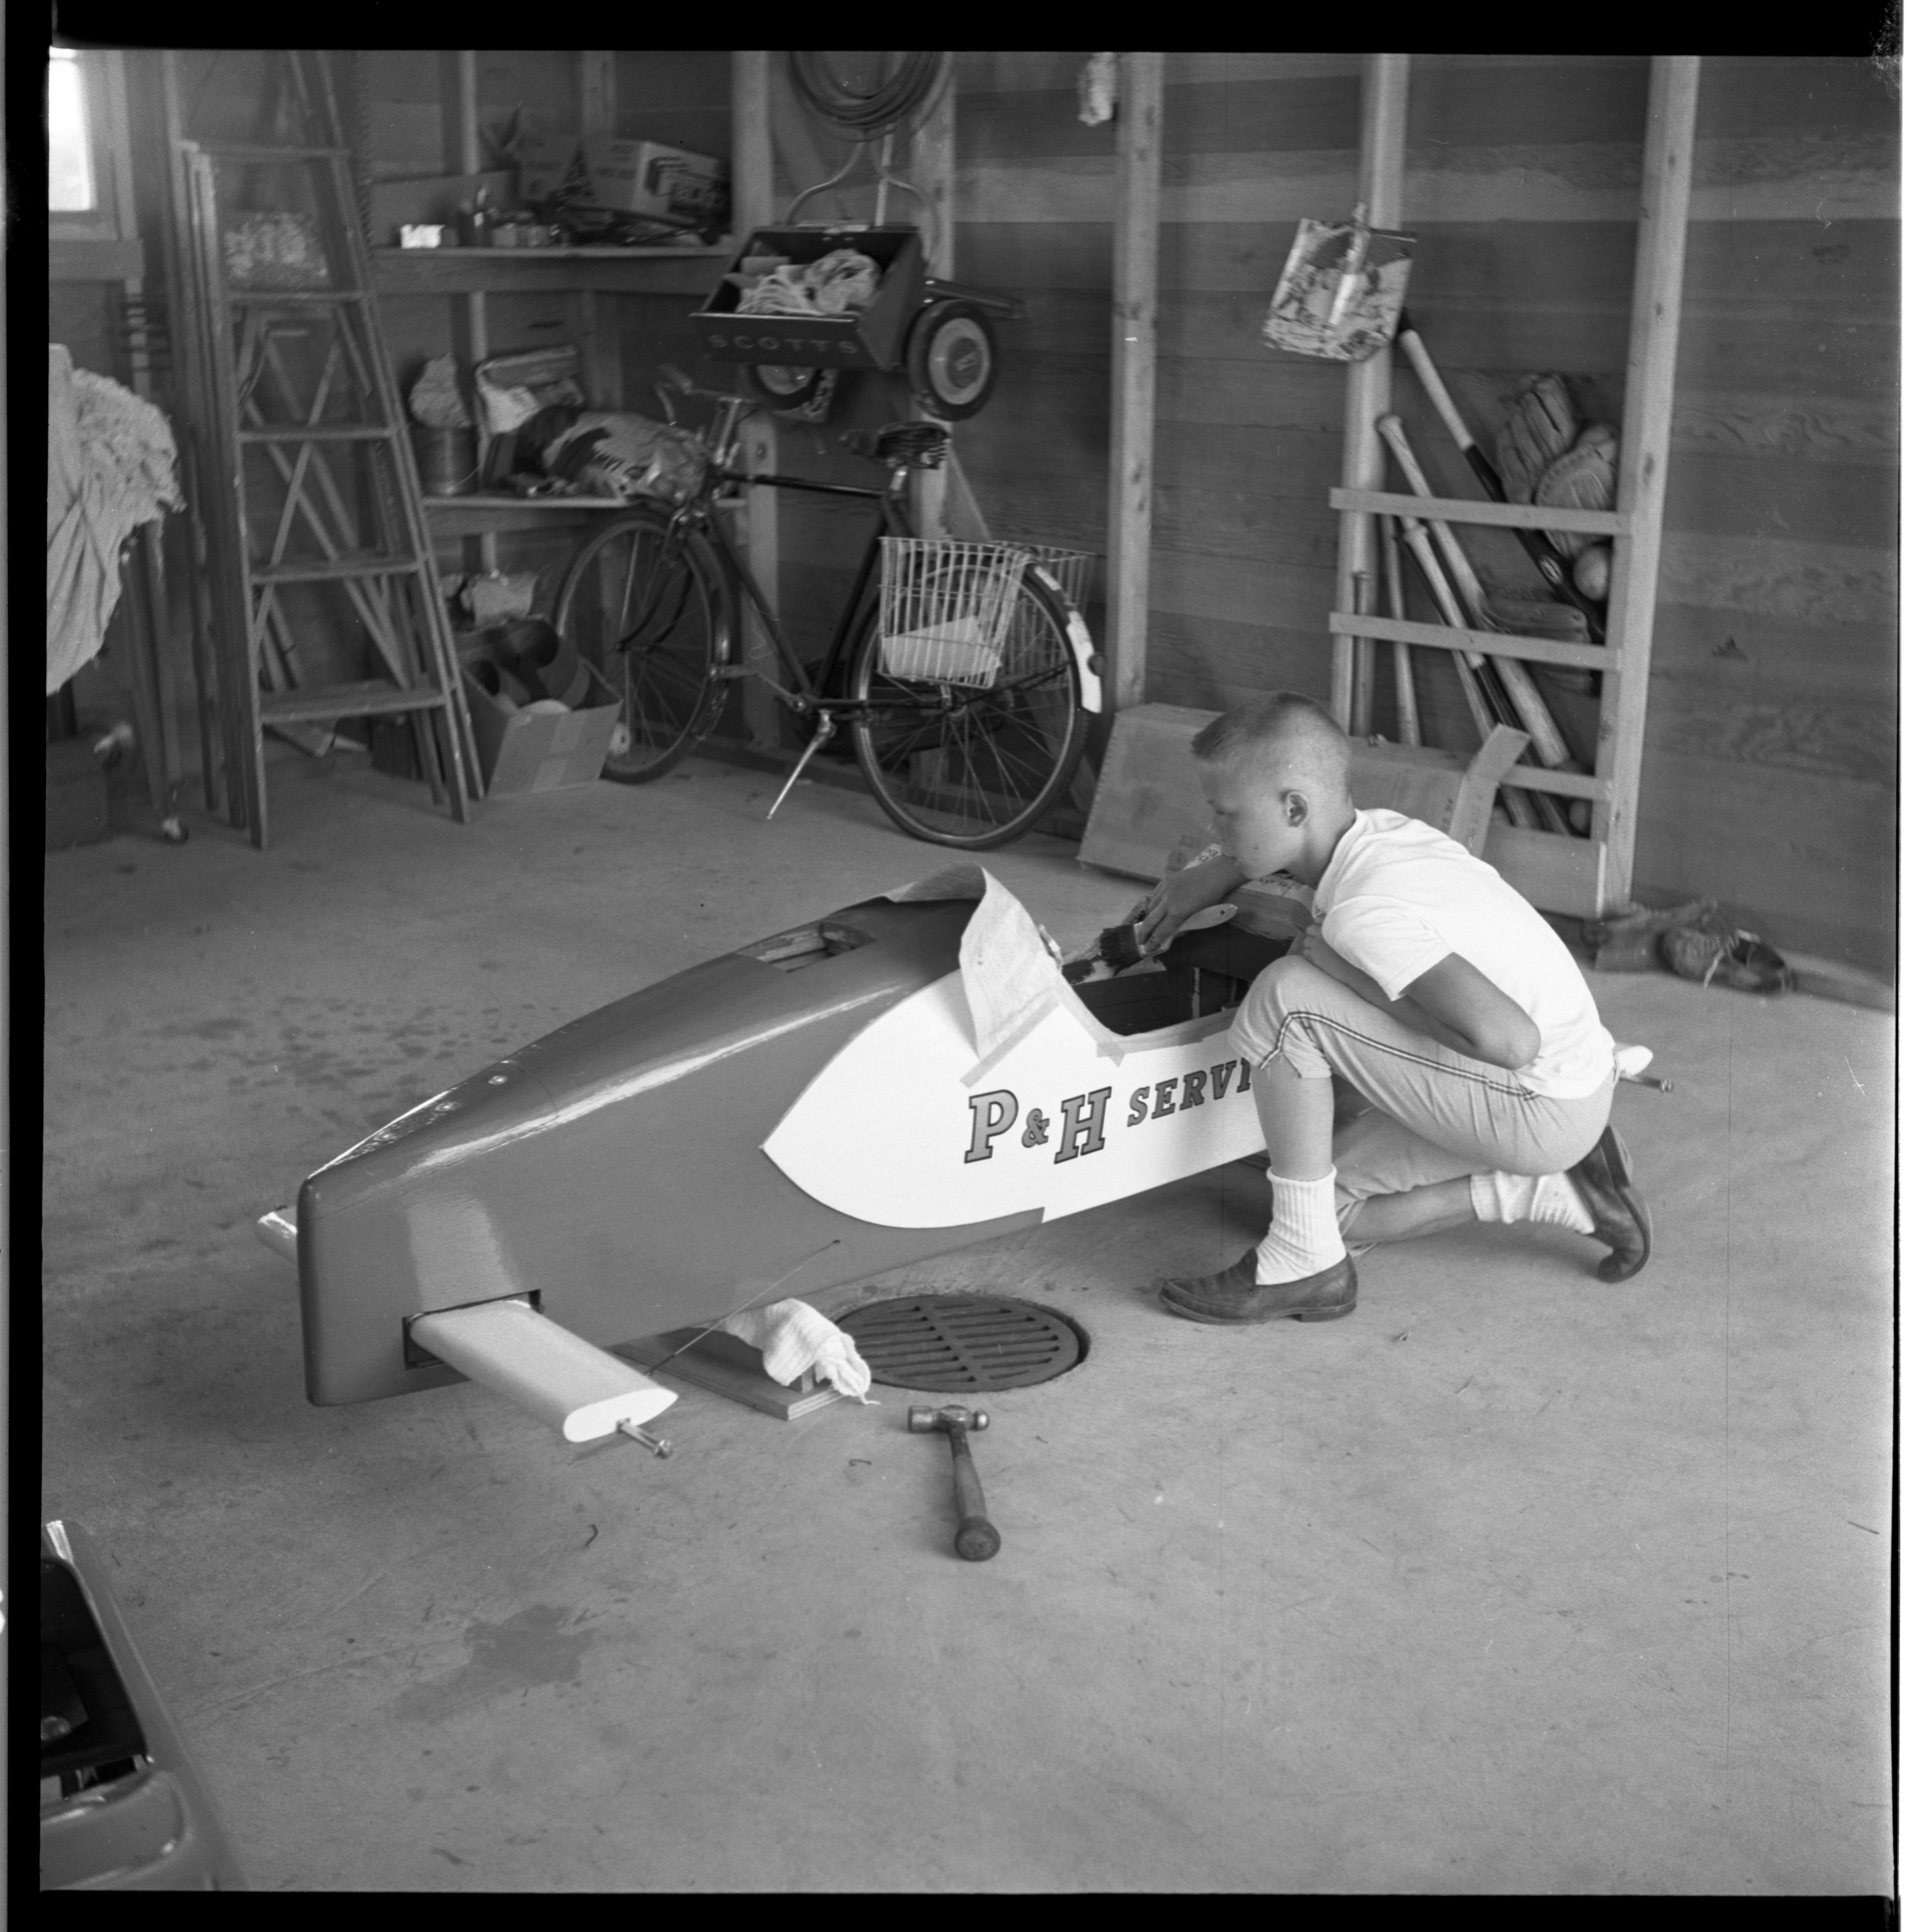 Craig Rigan Completing His Soap Box Derby Racer, July 1963 image